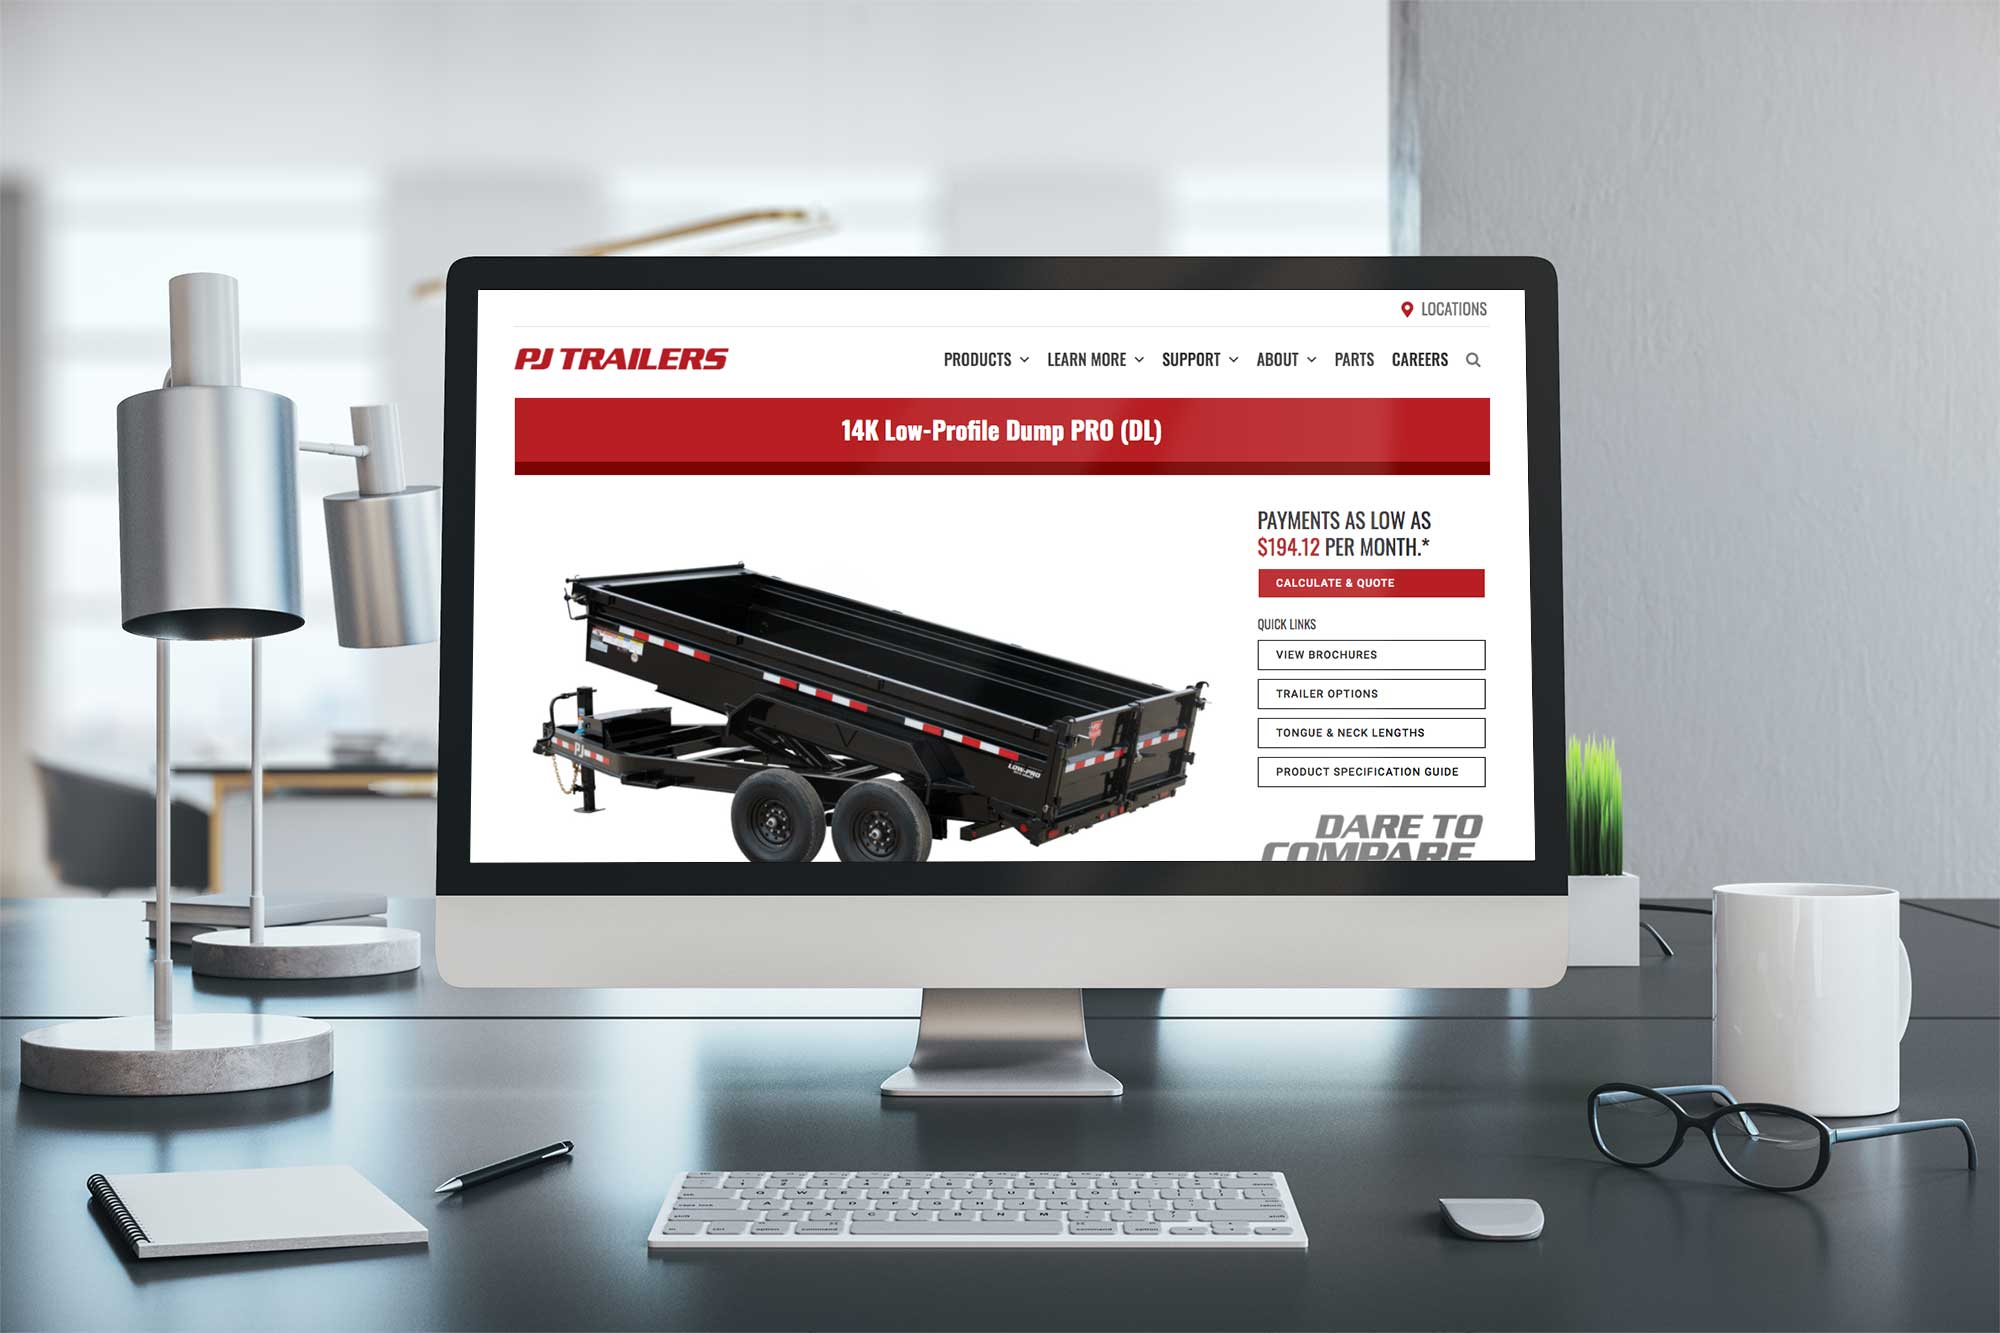 PJ Trailers website on a desktop computer